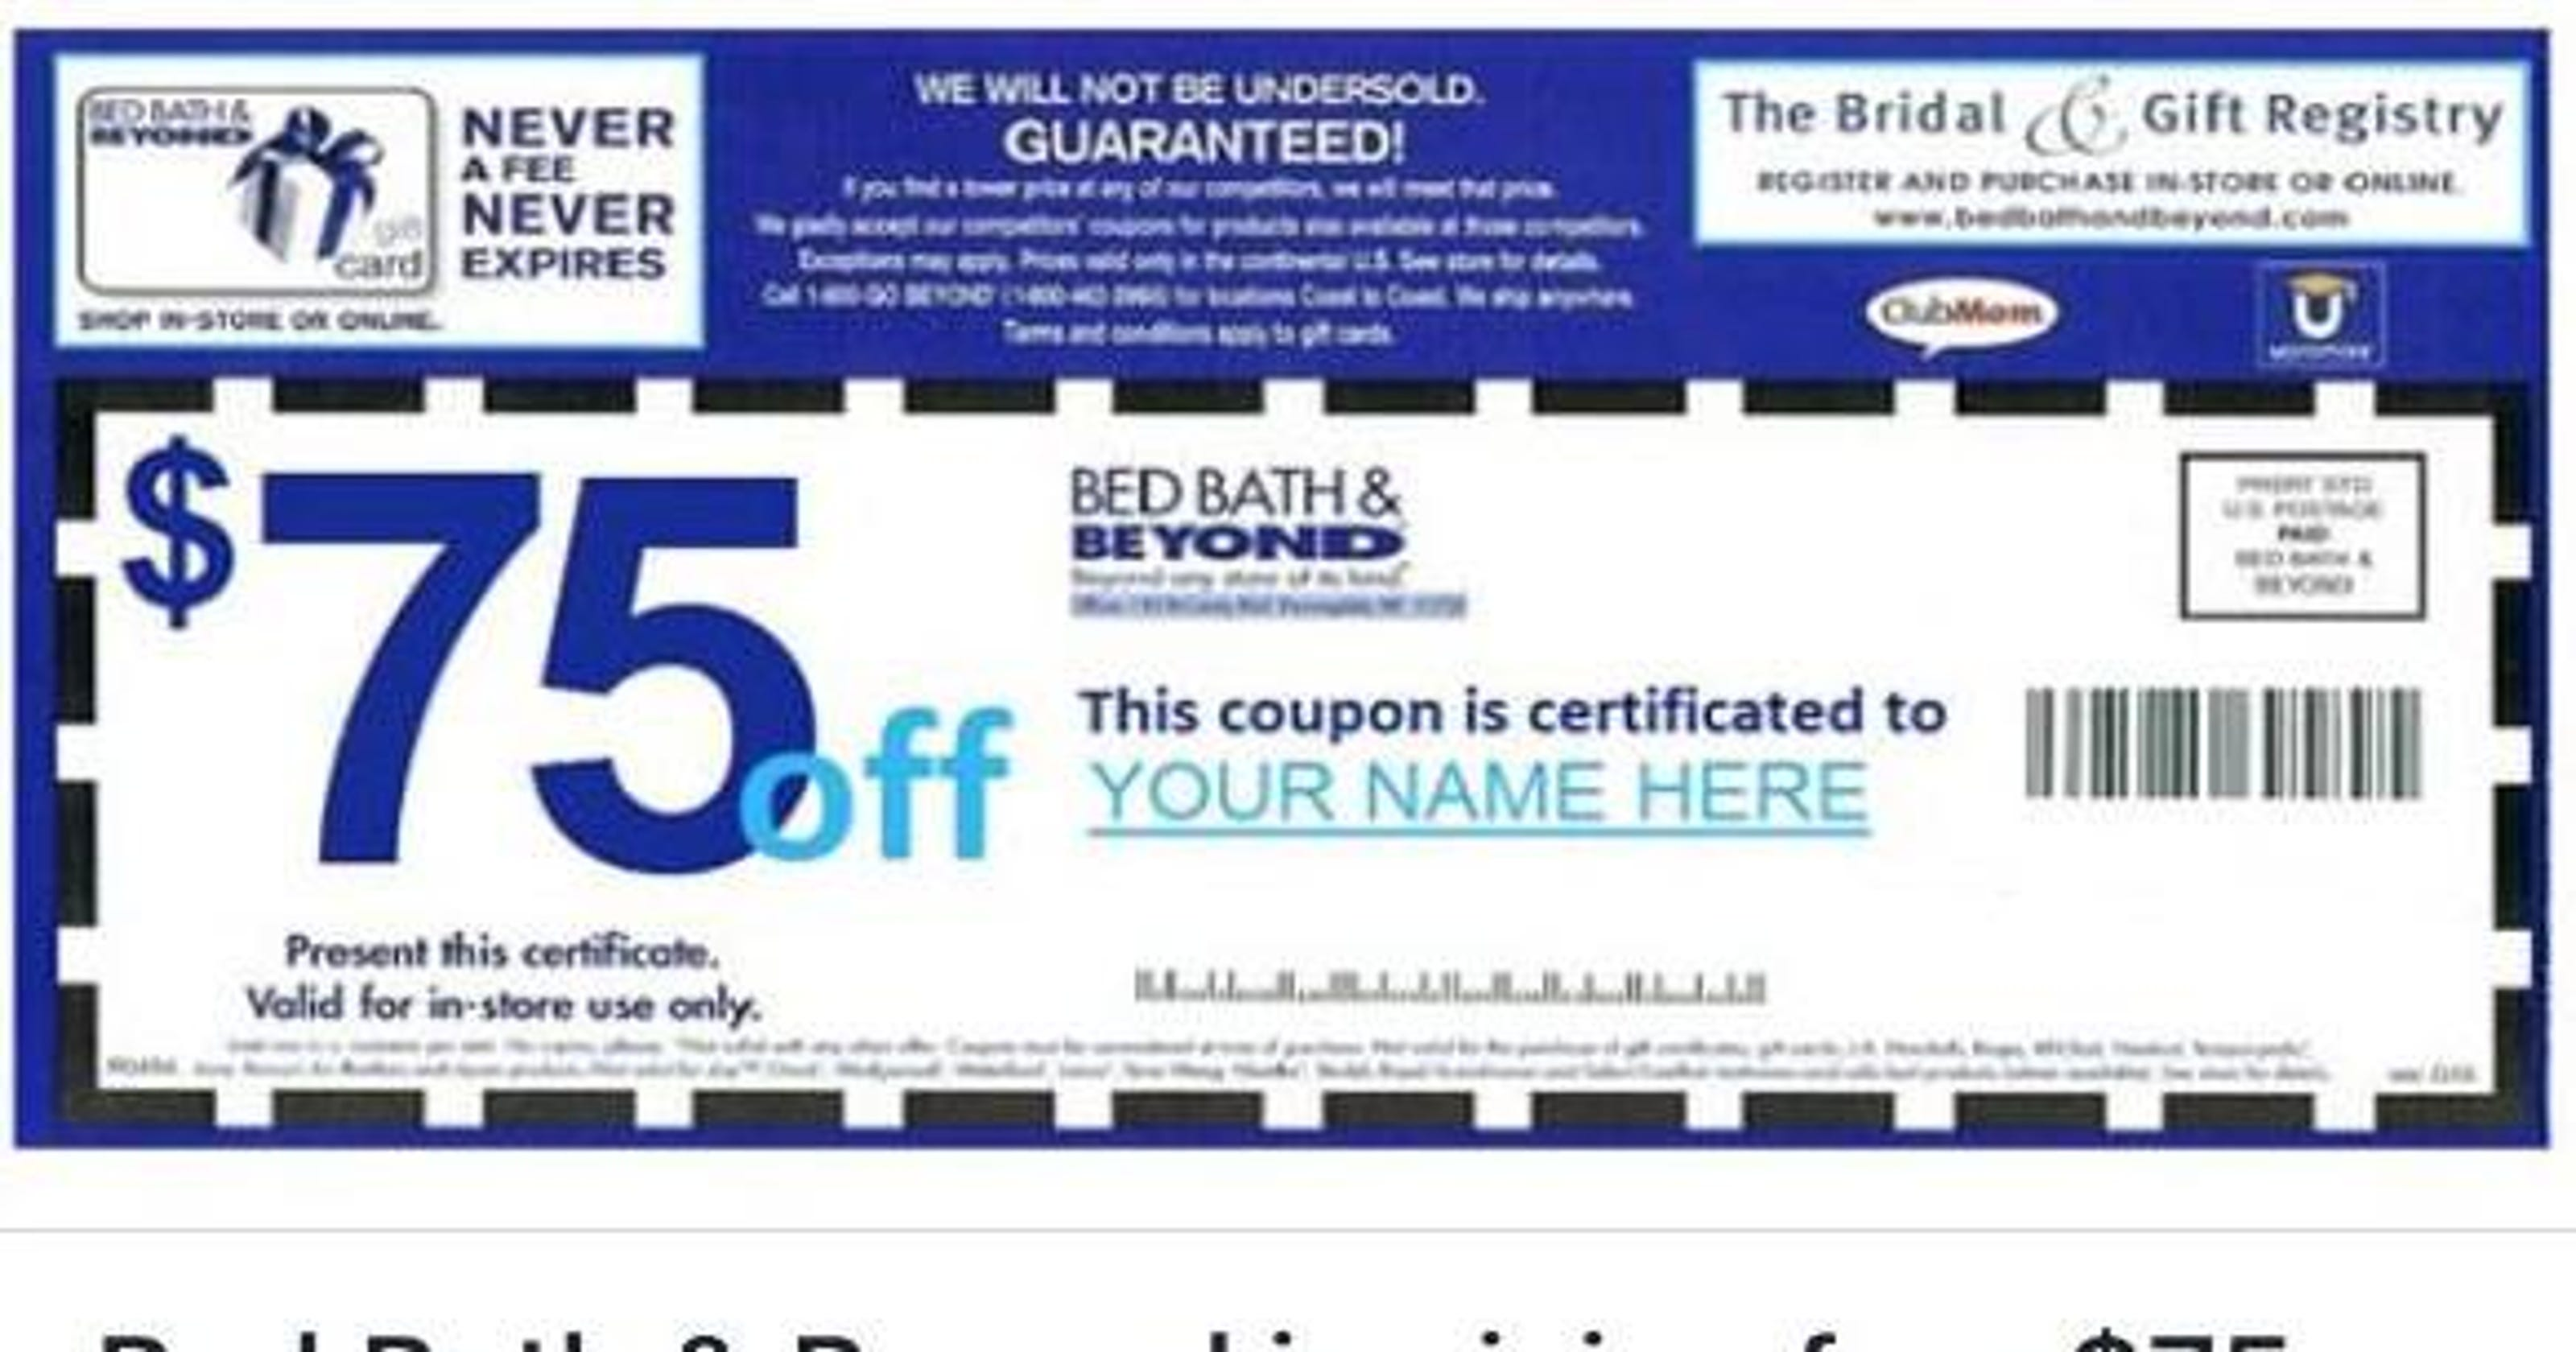 Forget About That 75 Bed Bath Beyond Coupon